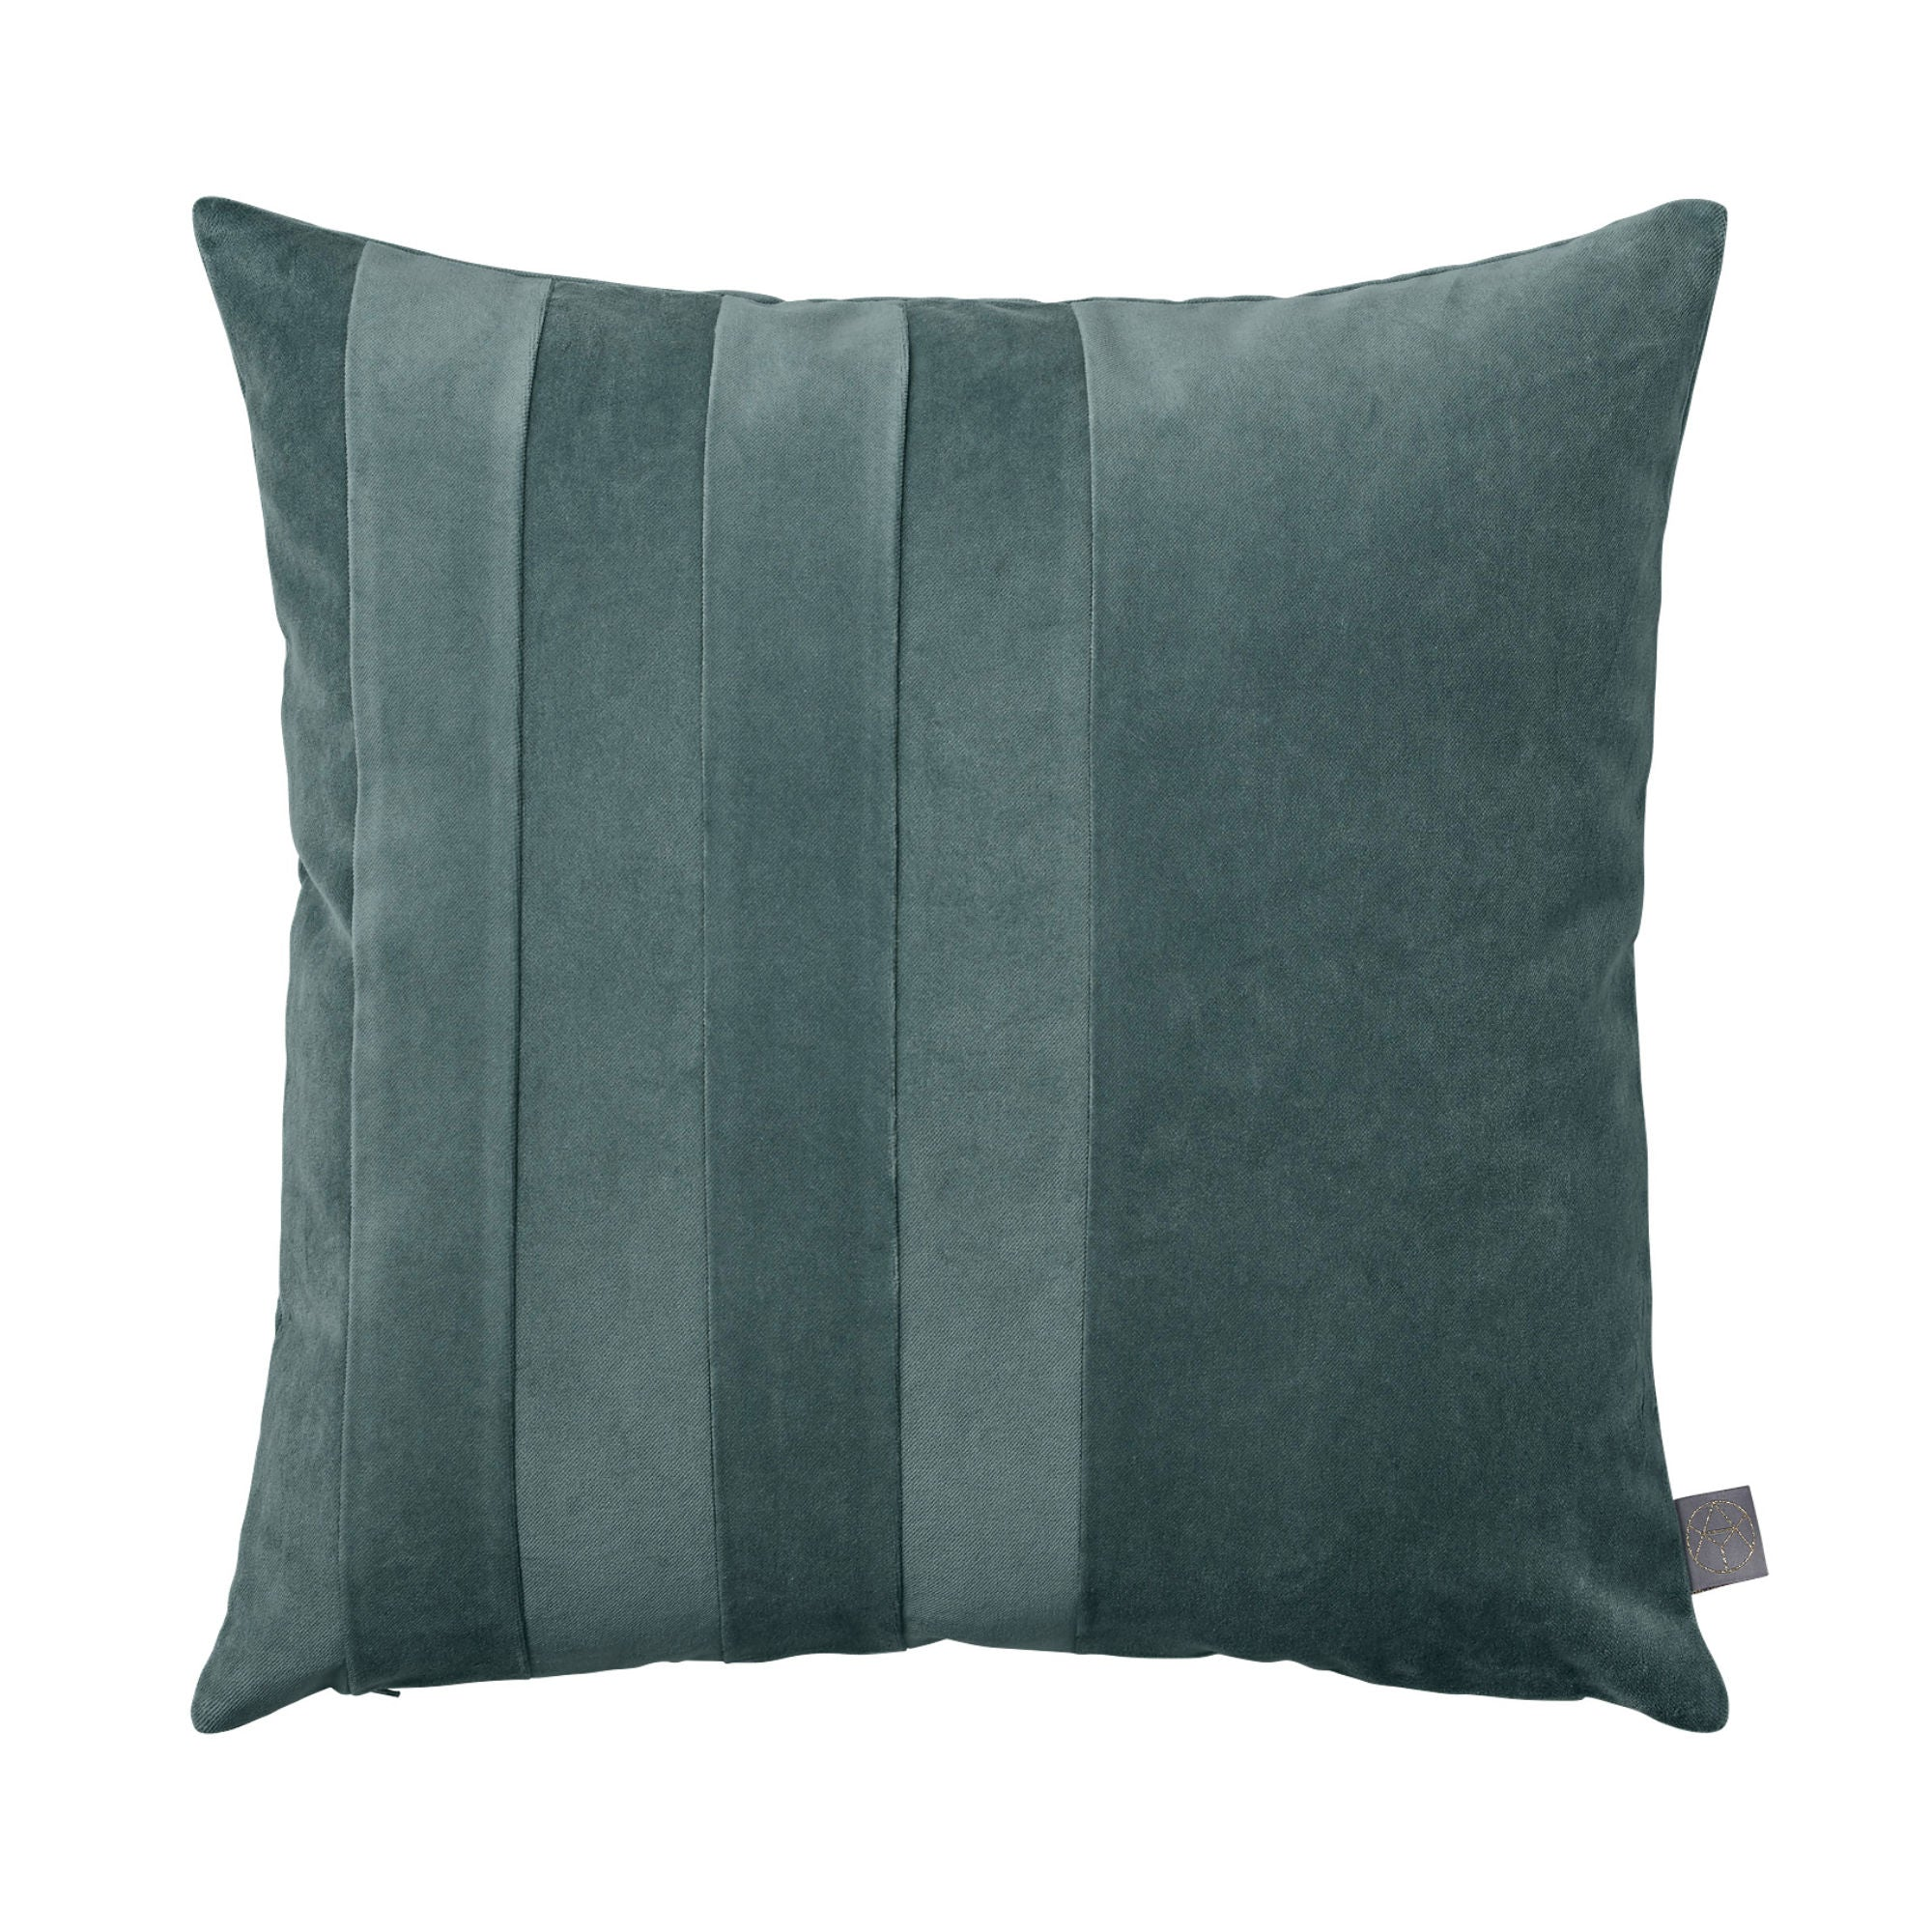 AYTM Sanati cushion , dusty green